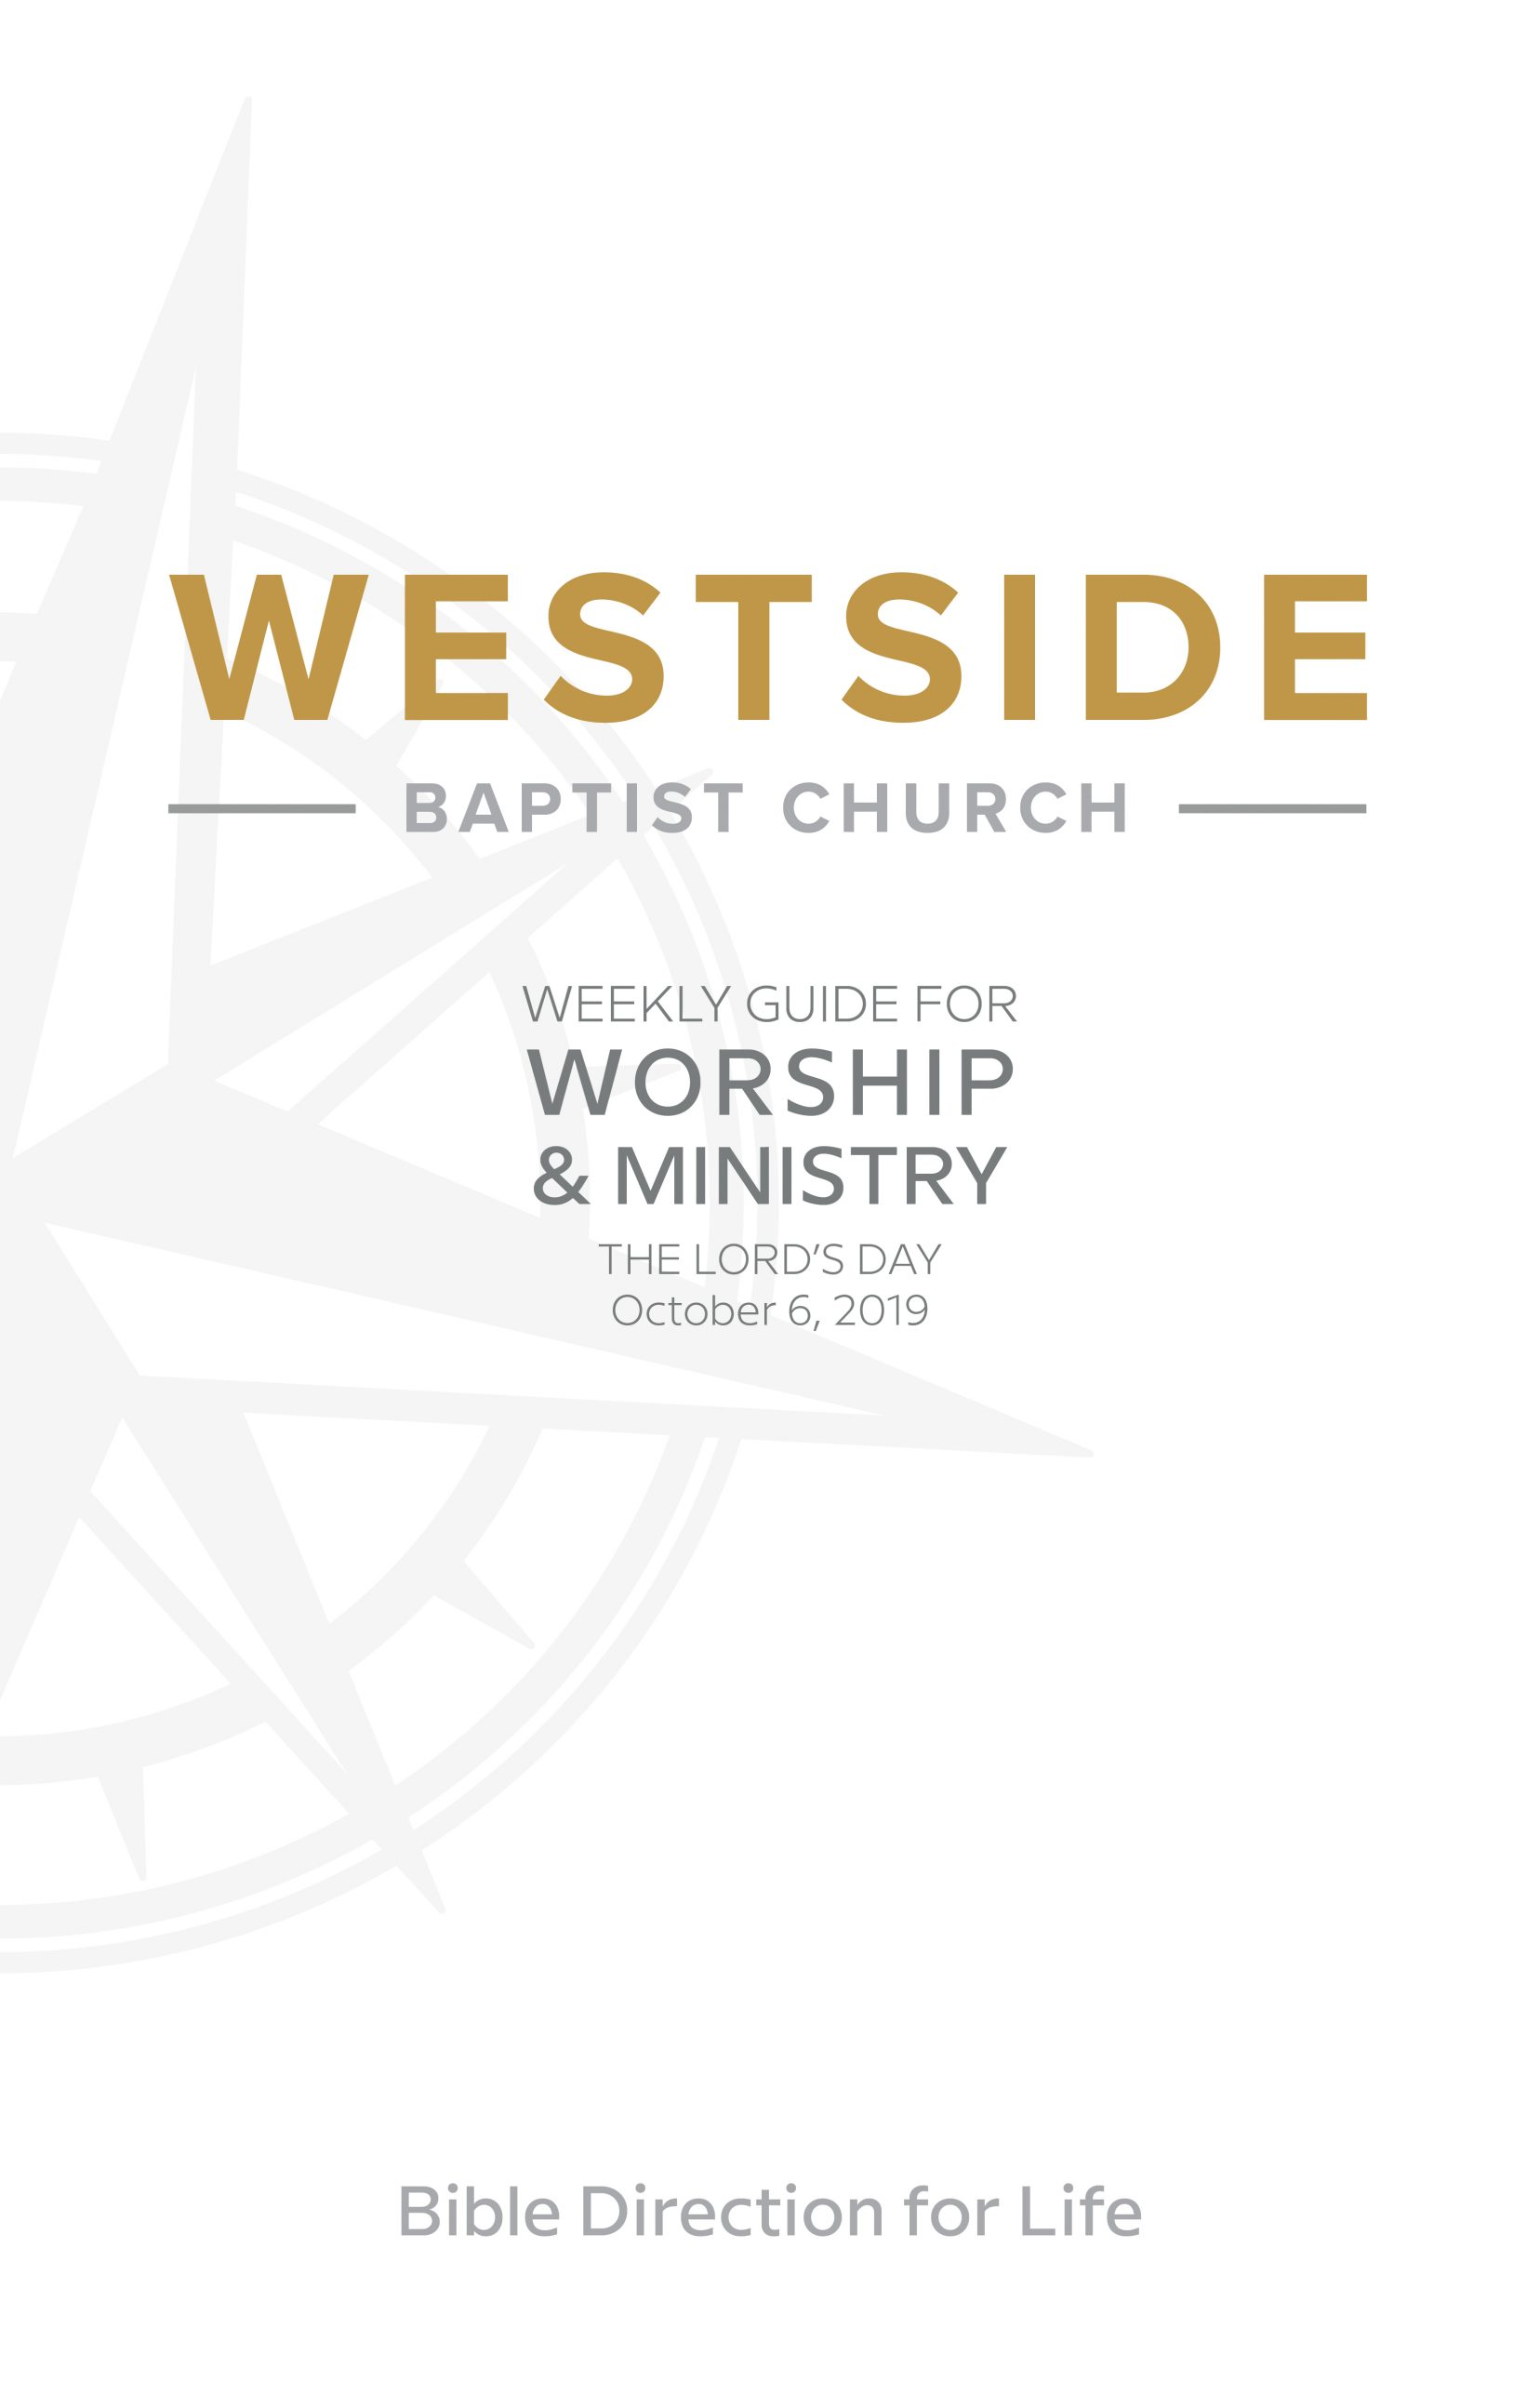 Weekly Guide for Worship and Ministry—October 6